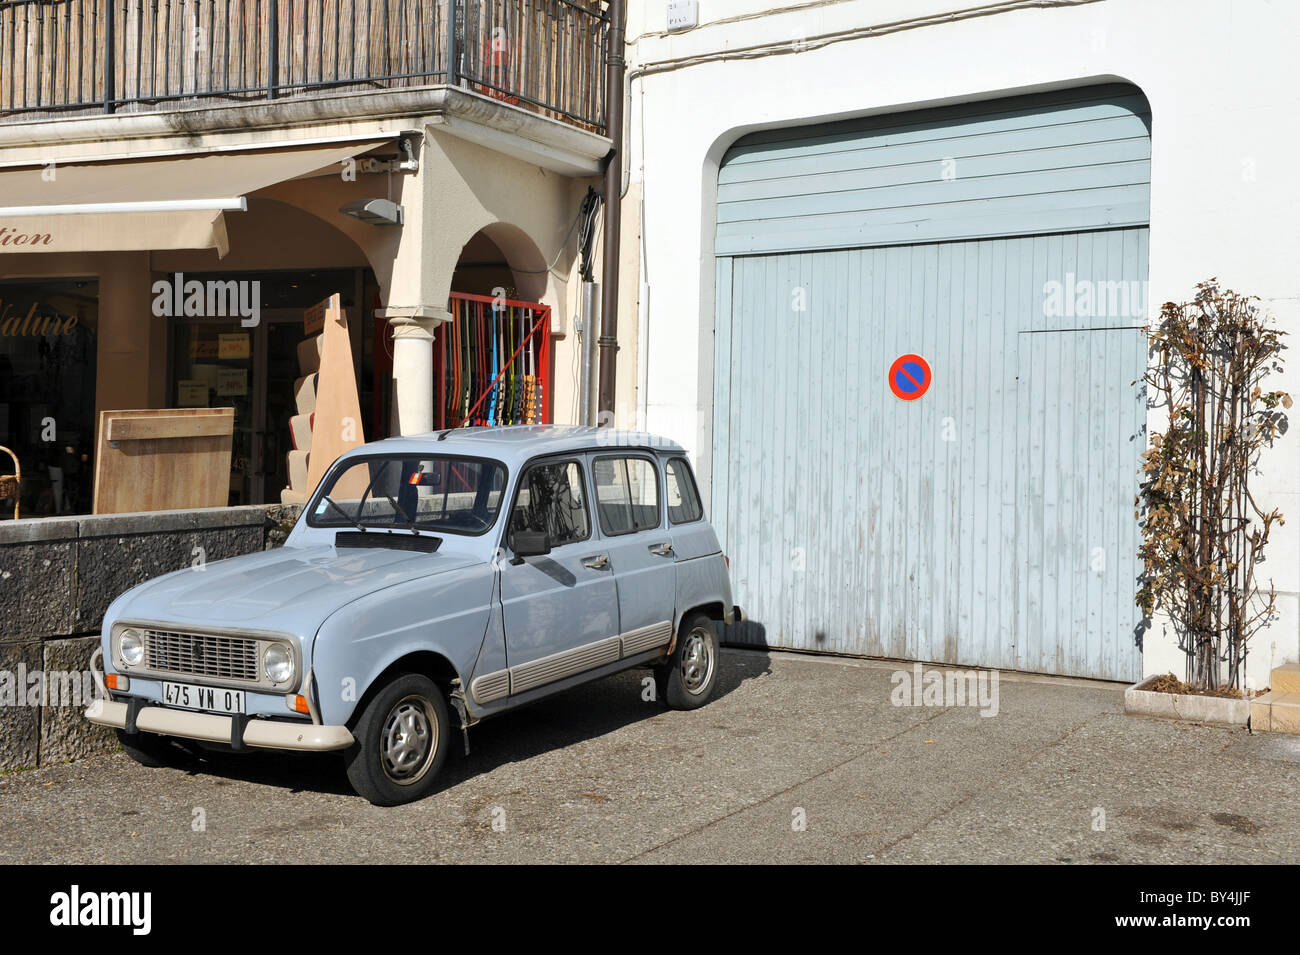 renault classic french car stock photos renault classic french car stock images alamy. Black Bedroom Furniture Sets. Home Design Ideas